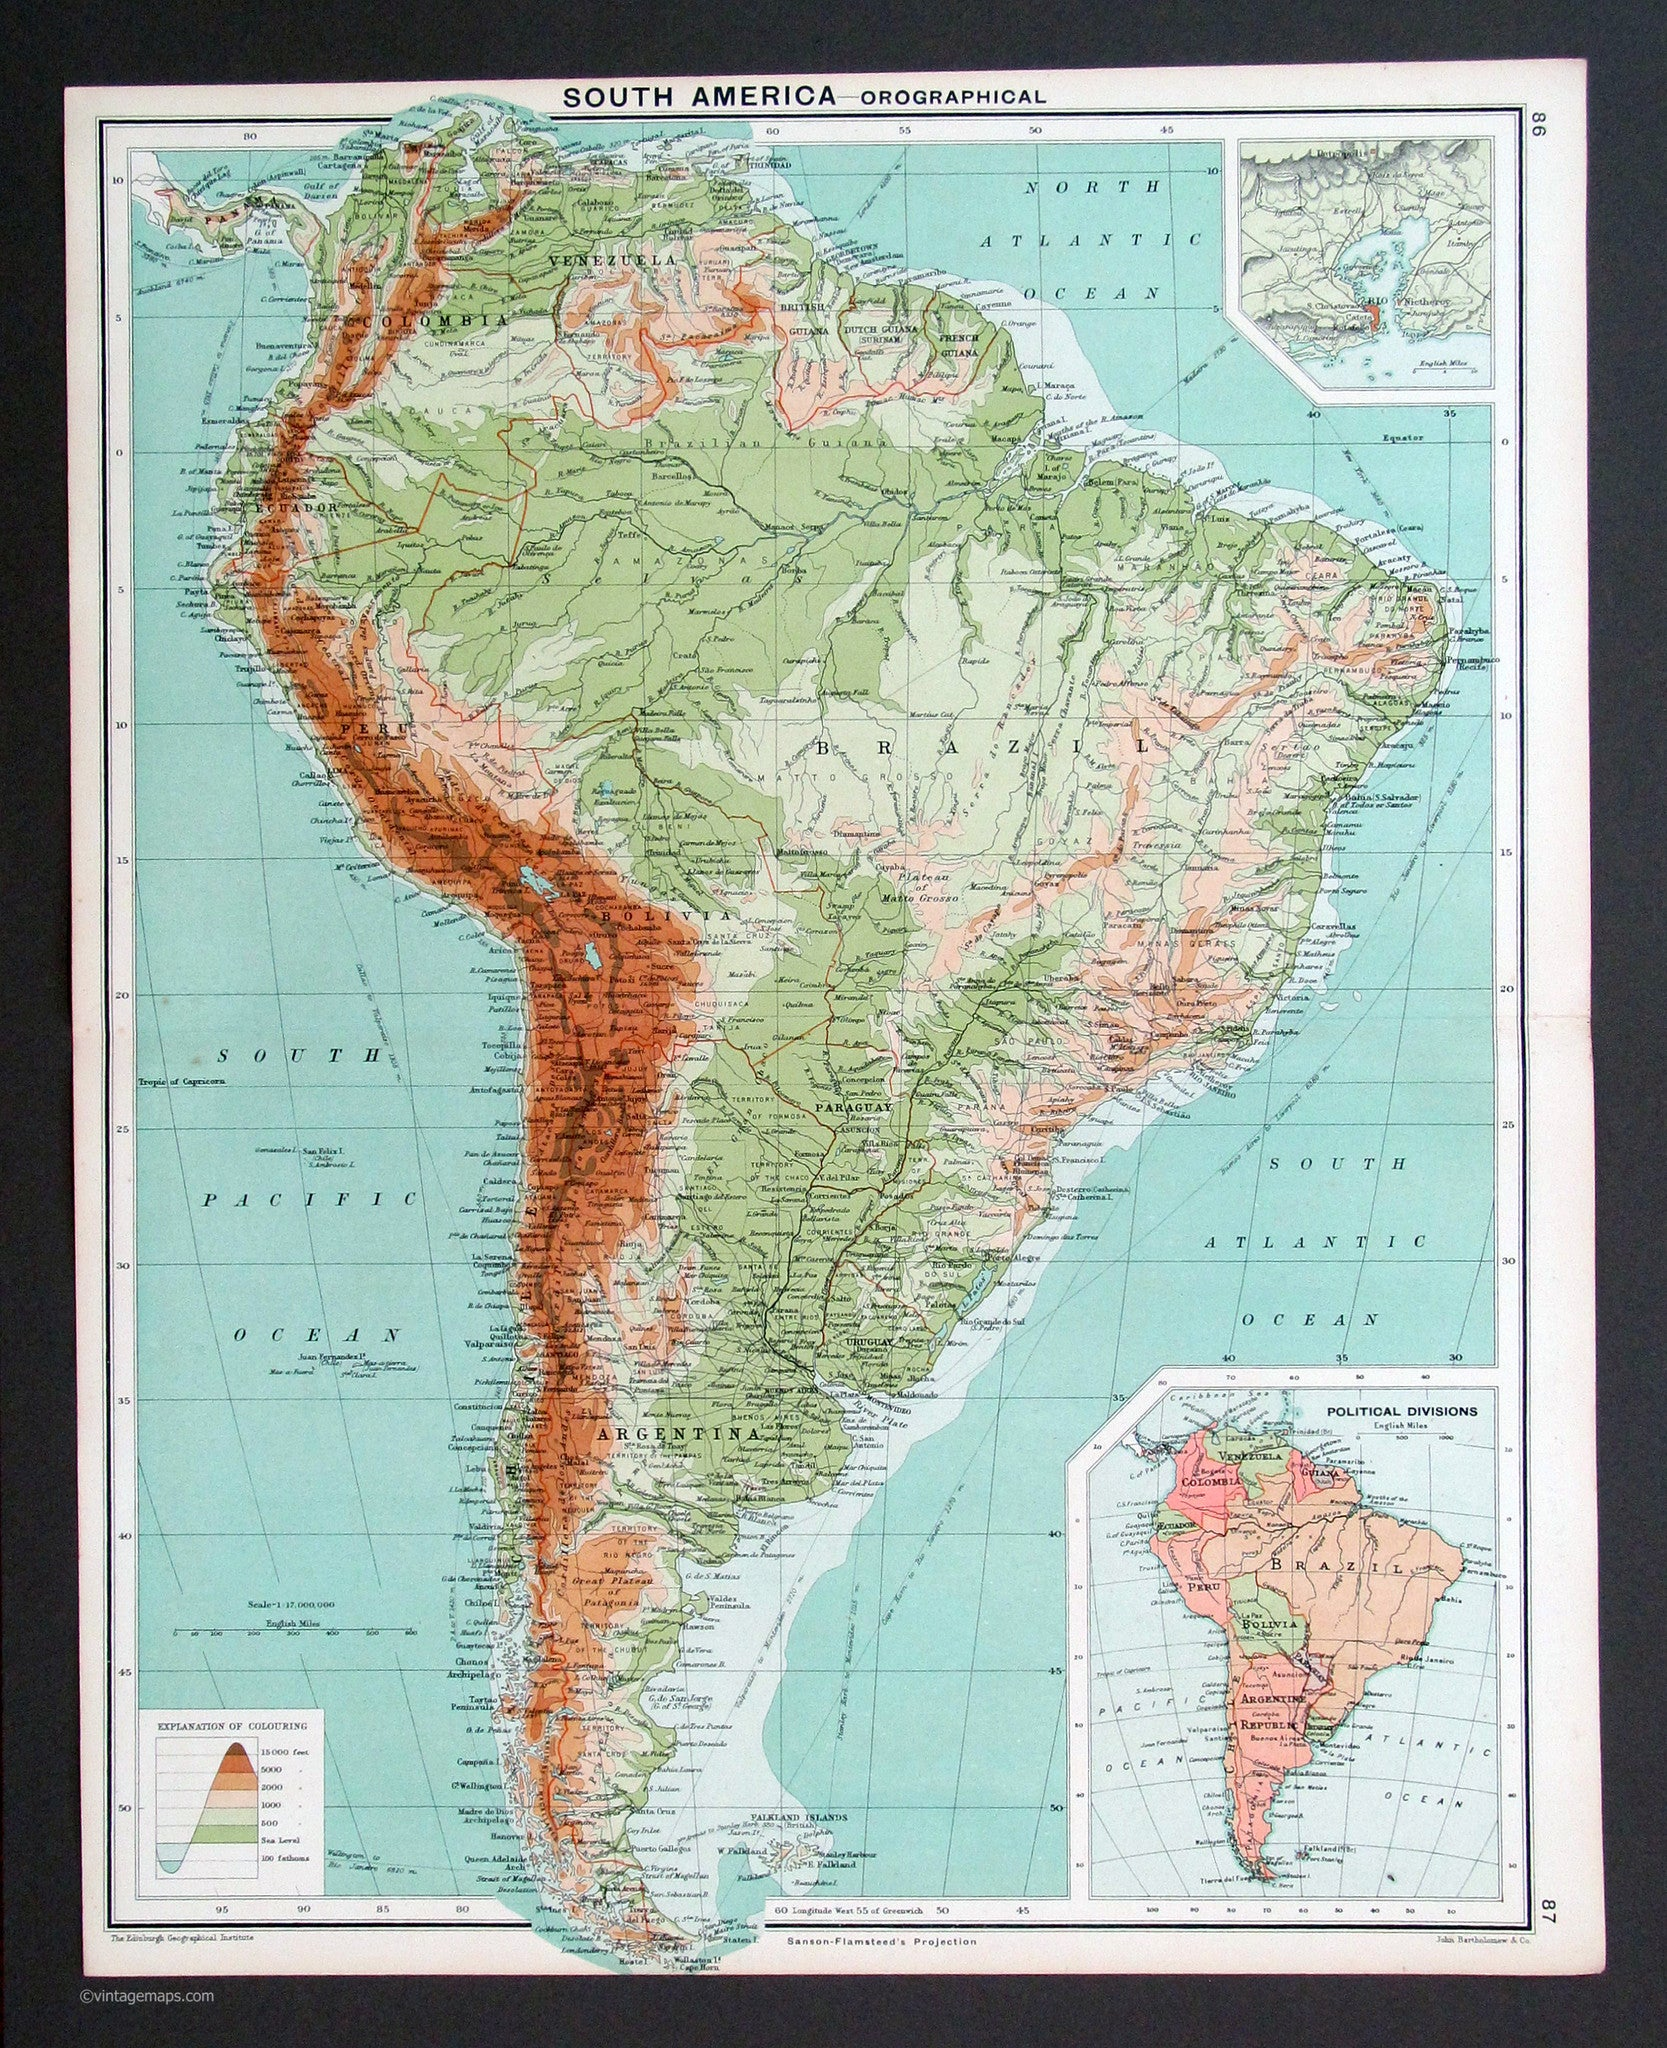 South America 1917 - Vintage Maps on